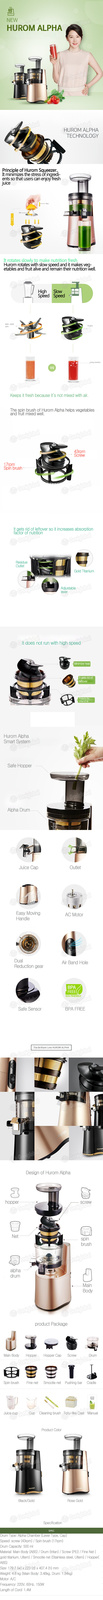 HUROM Launching 1-Day event!2016 HUROM ALPHA Slow Juicer / H-AA-LBF17 / H-AA-BBF